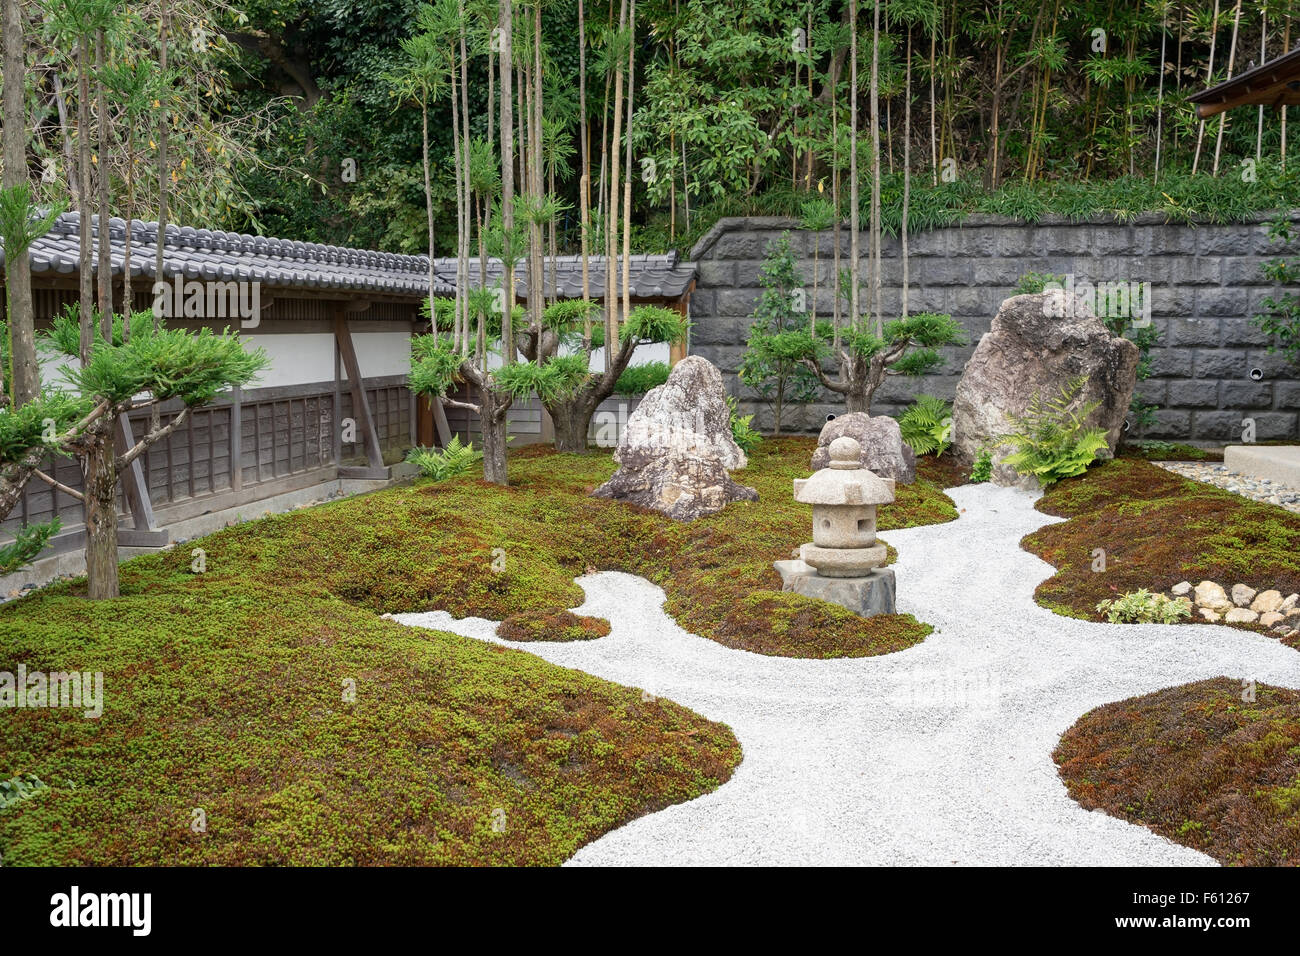 A Traditional Zen Garden At The Hase Dera Buddhist Temple At Stock Photo Alamy